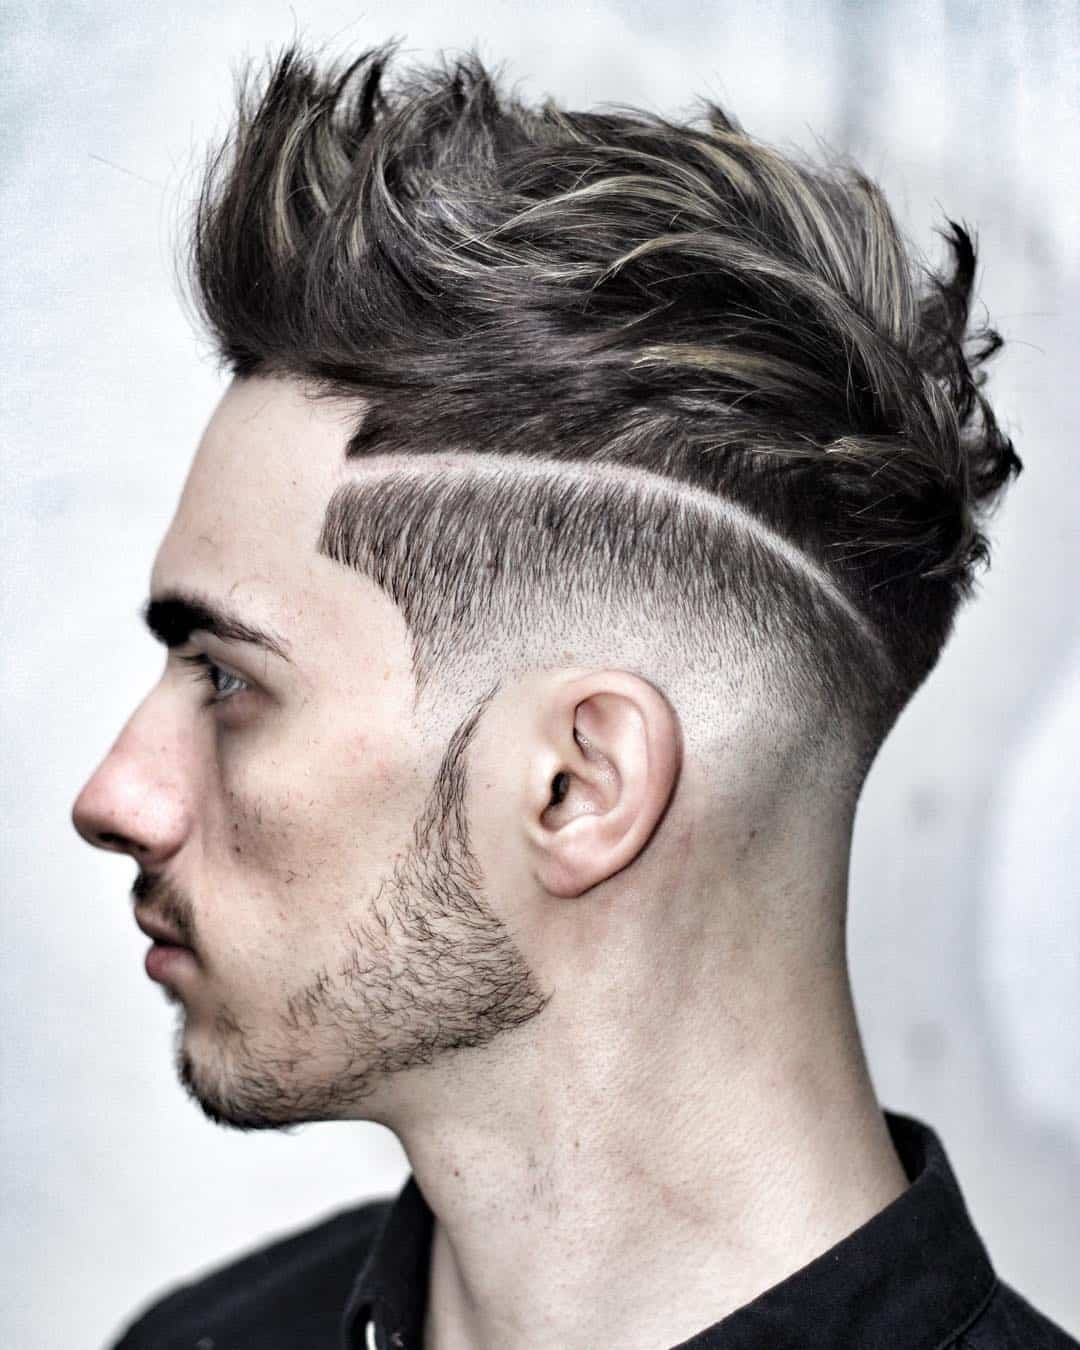 Captivating Stylish Haircuts For Men